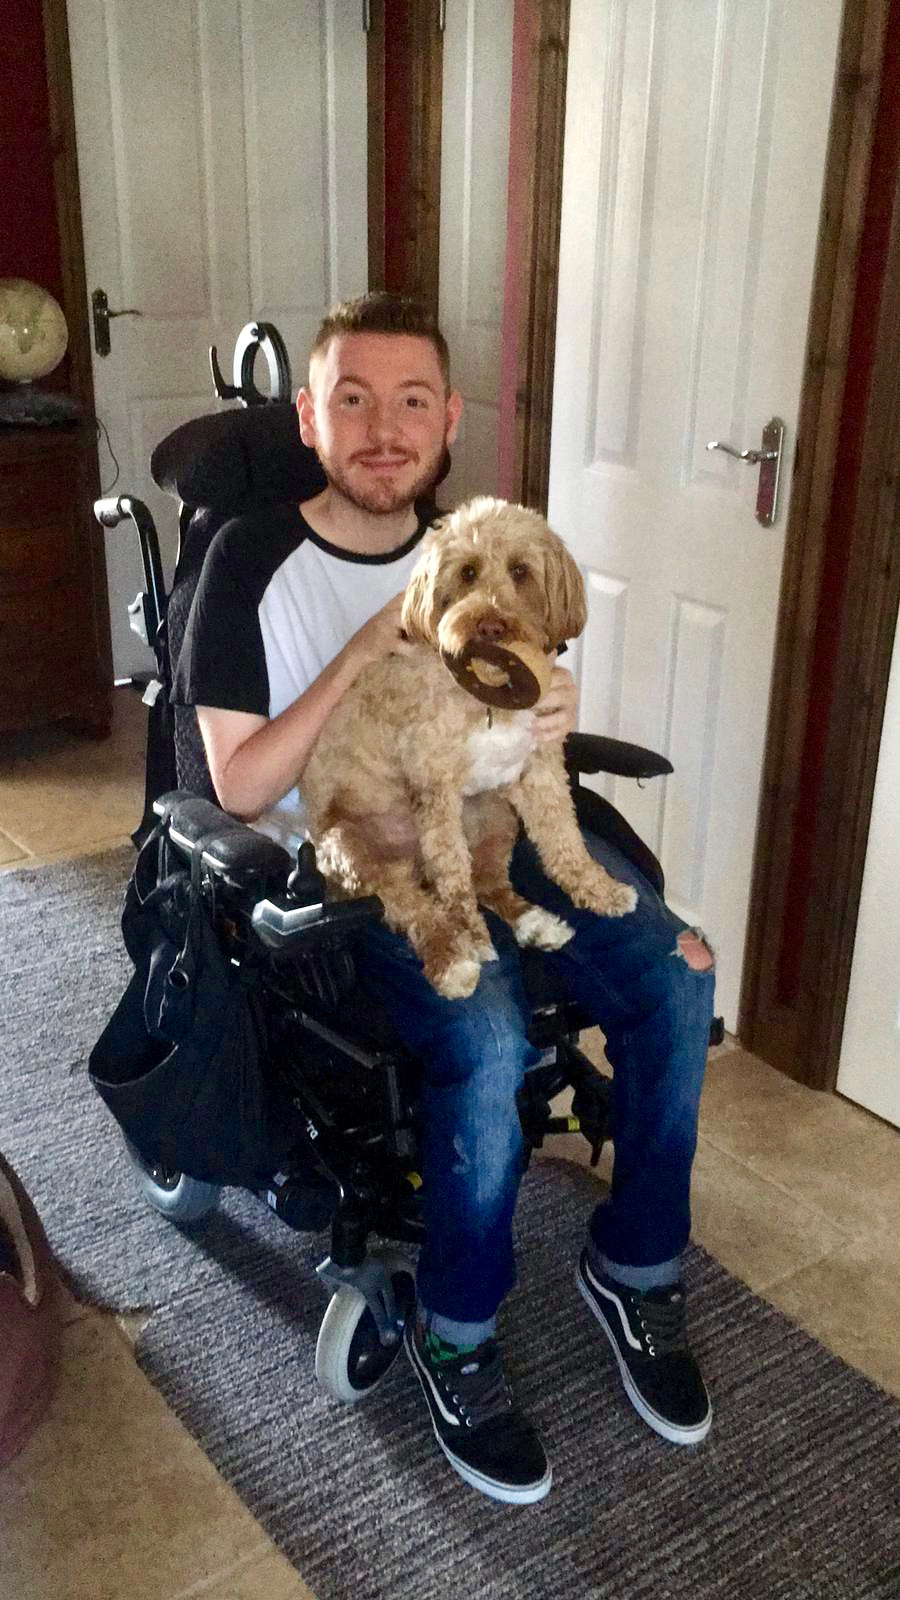 Ross sat in his wheelchair, with Ralph perched on his lap